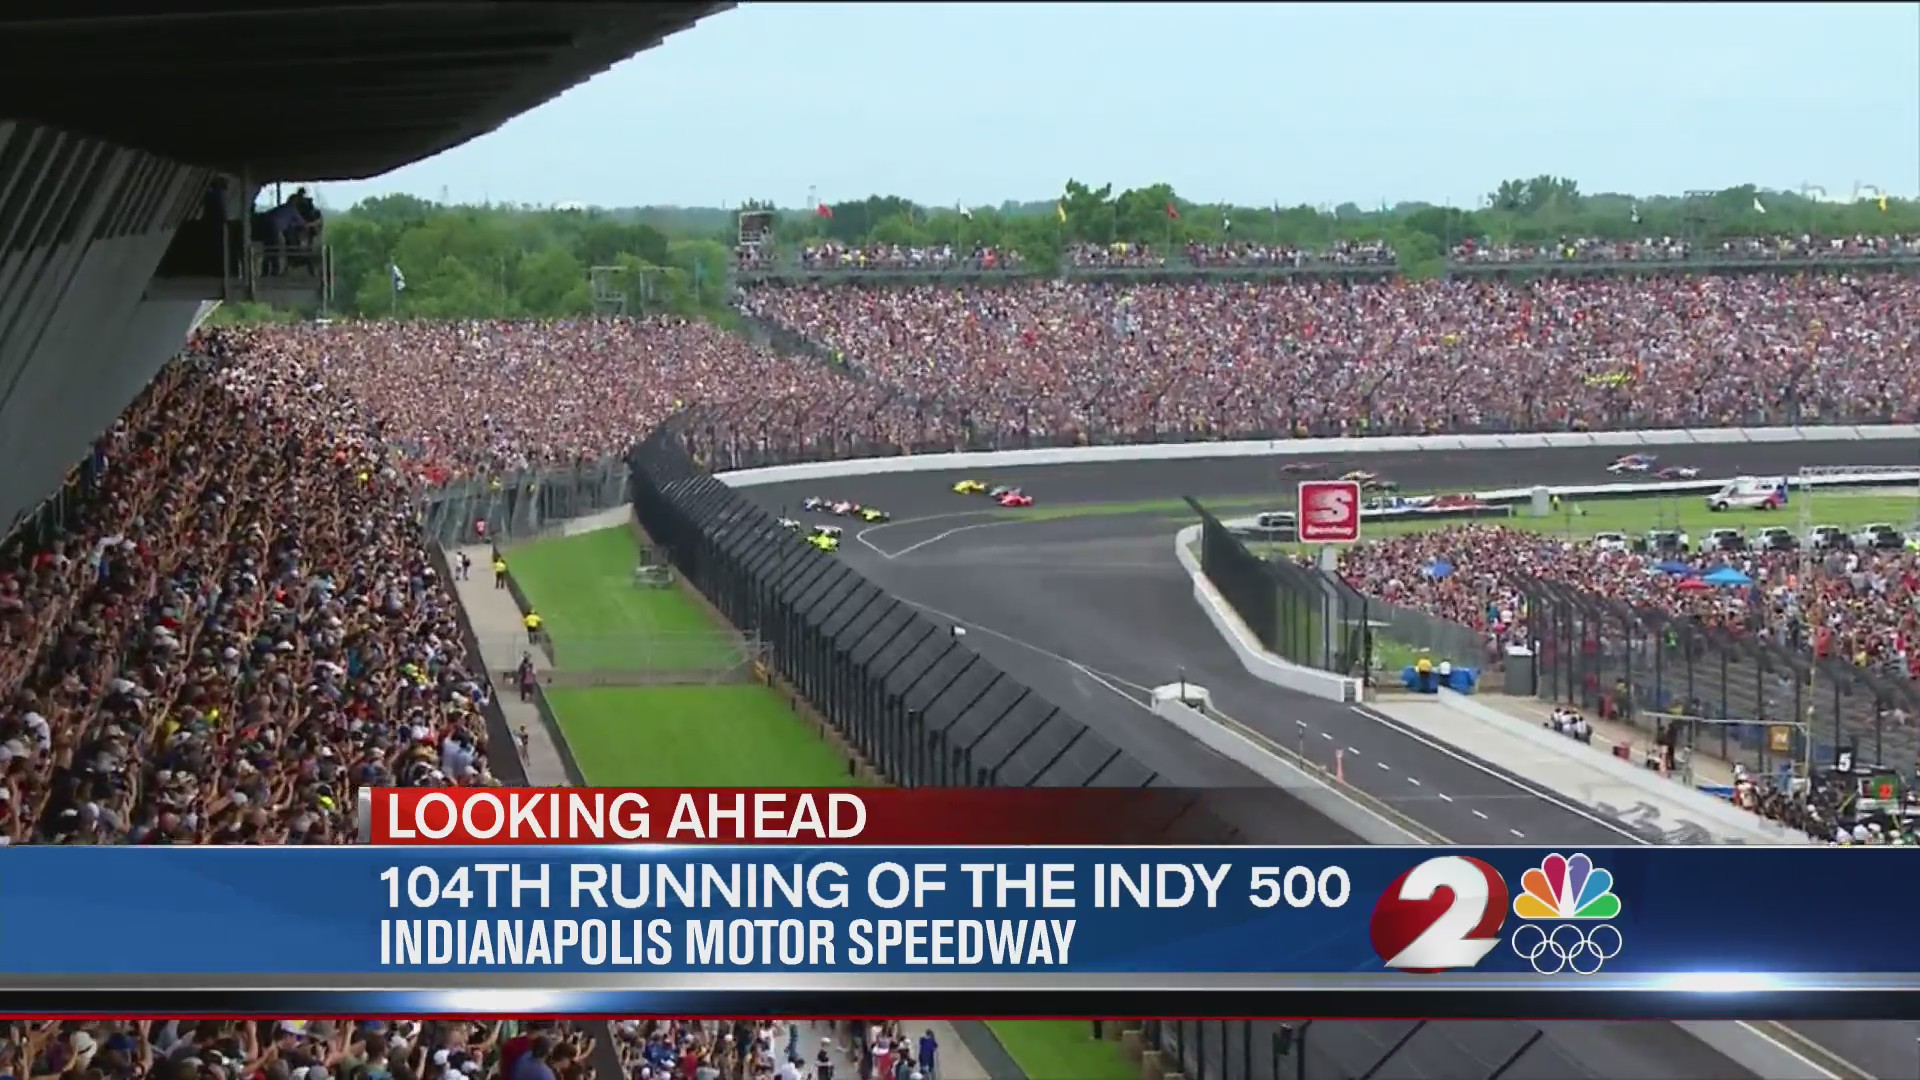 Running of the Indy